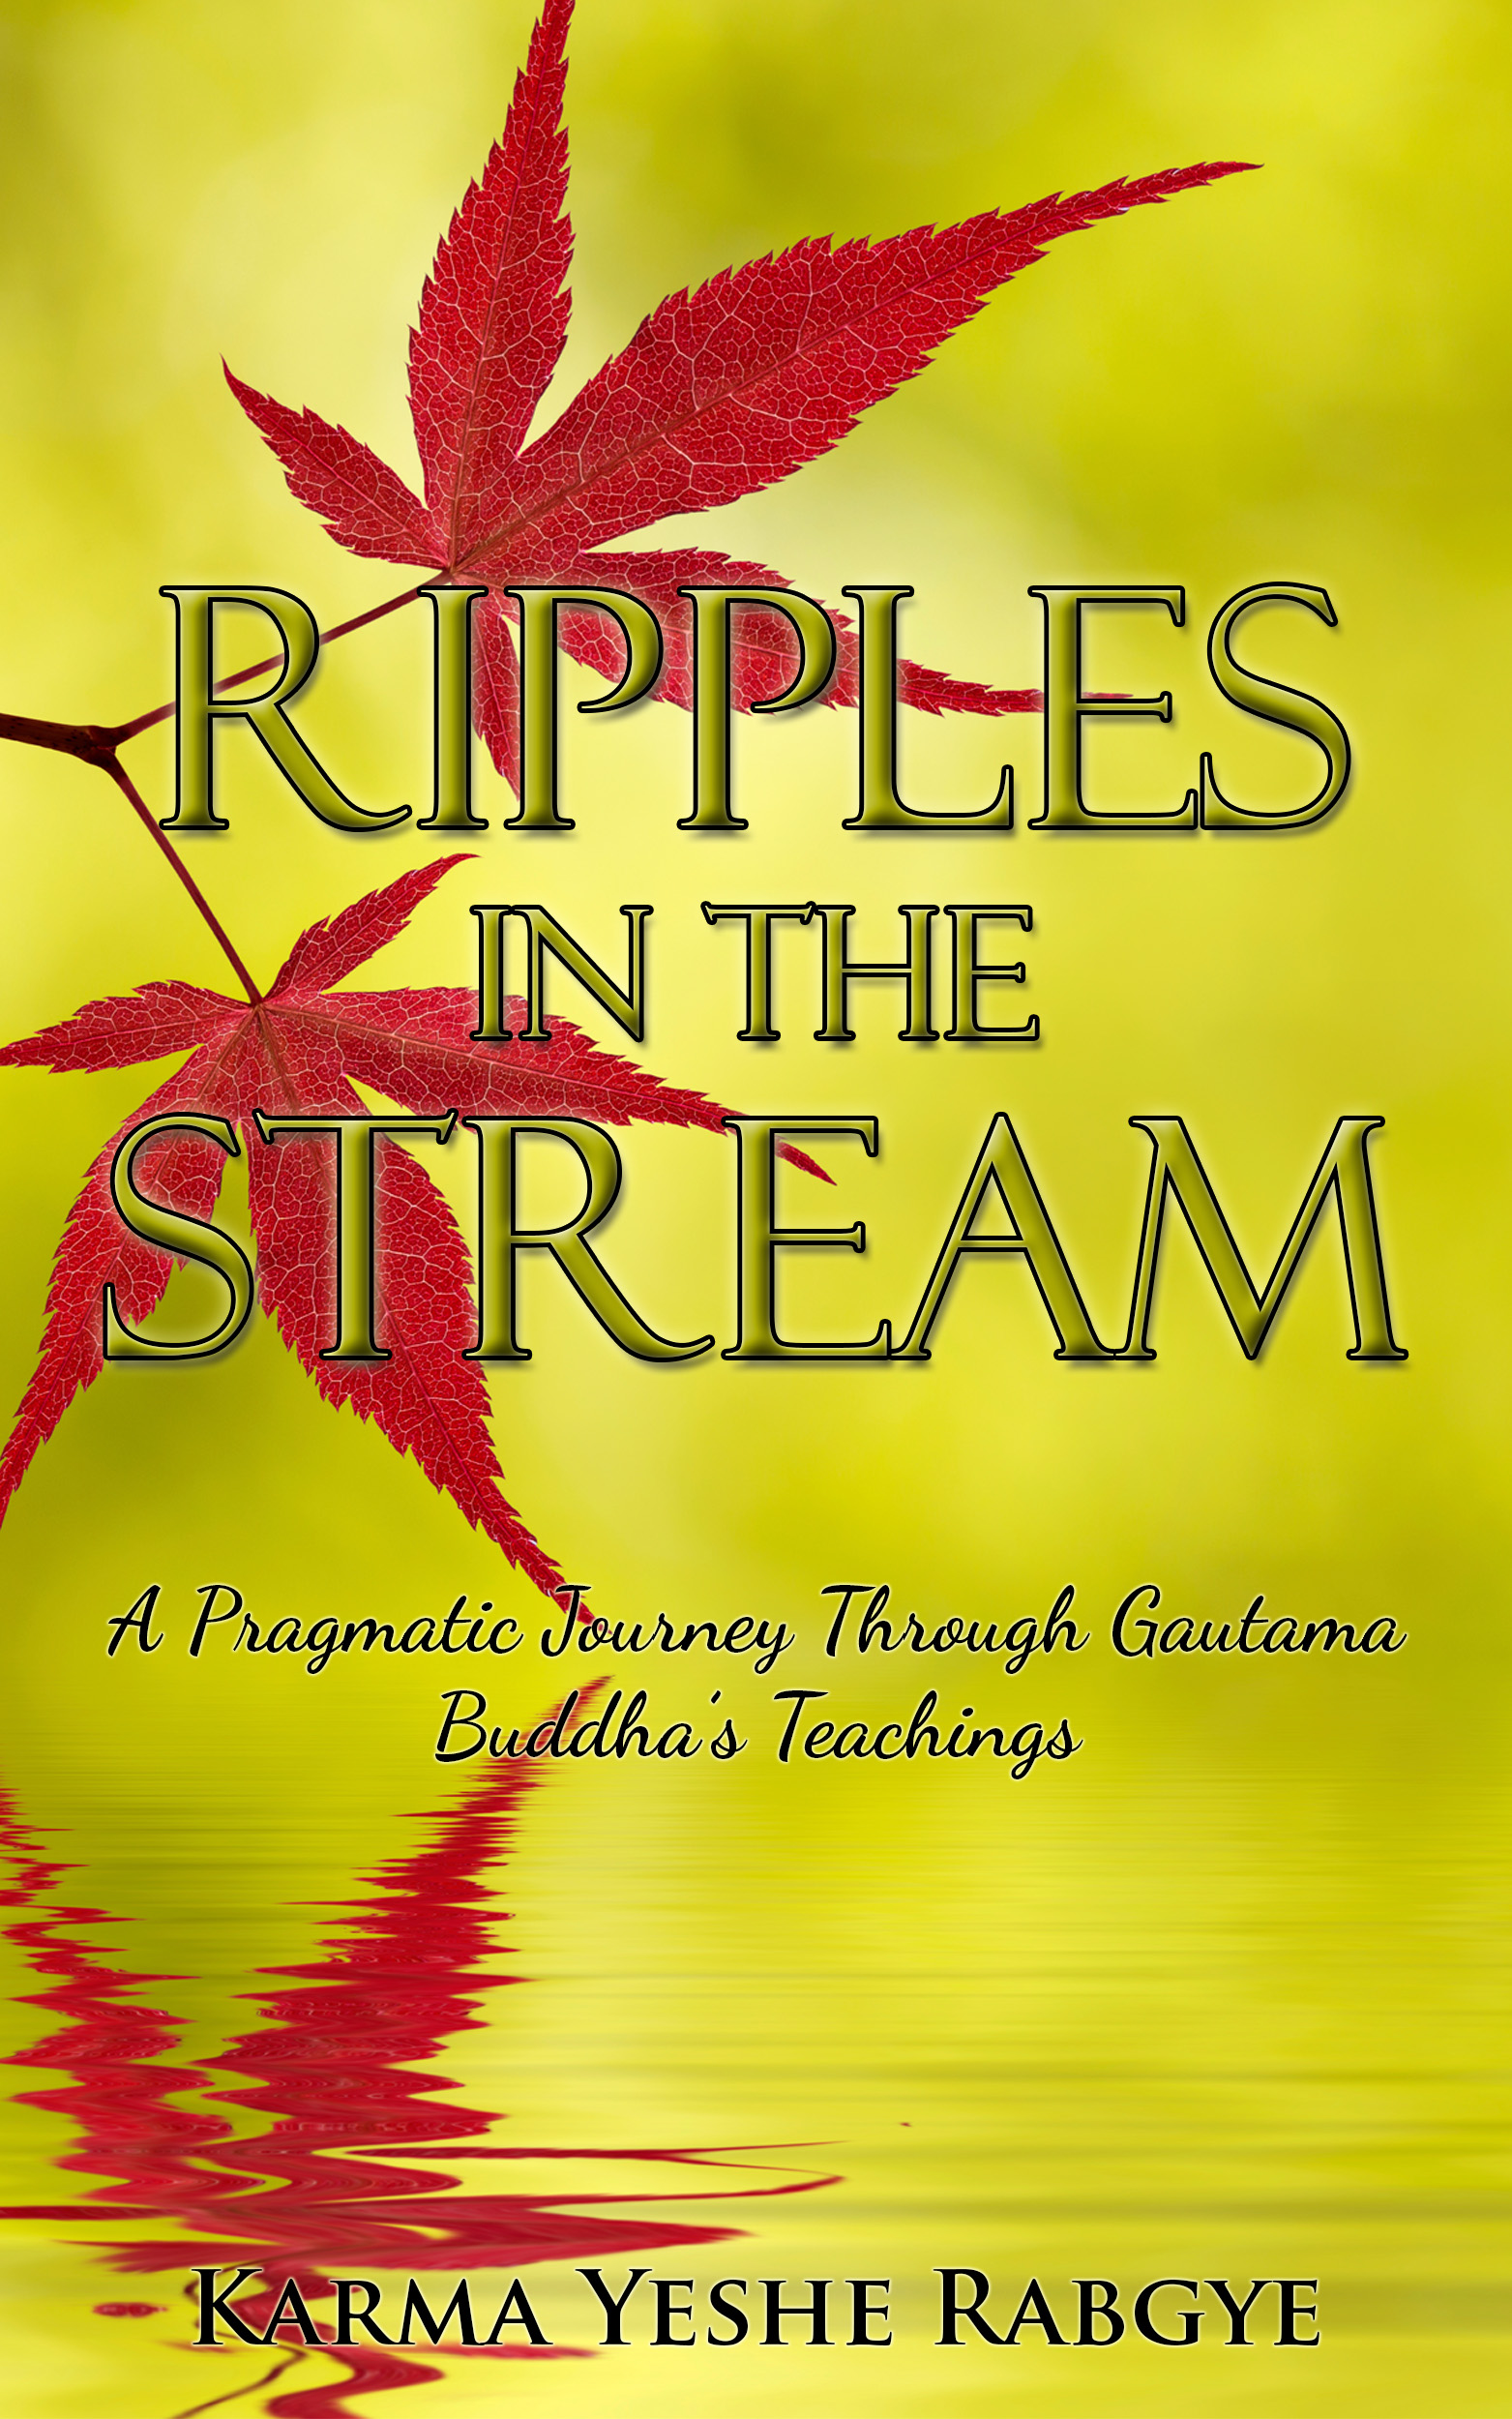 Ripples in the Stream – A Pragmatic Journey Through Gautama Buddha's Teachings, by Karma Yeshe Rabgye